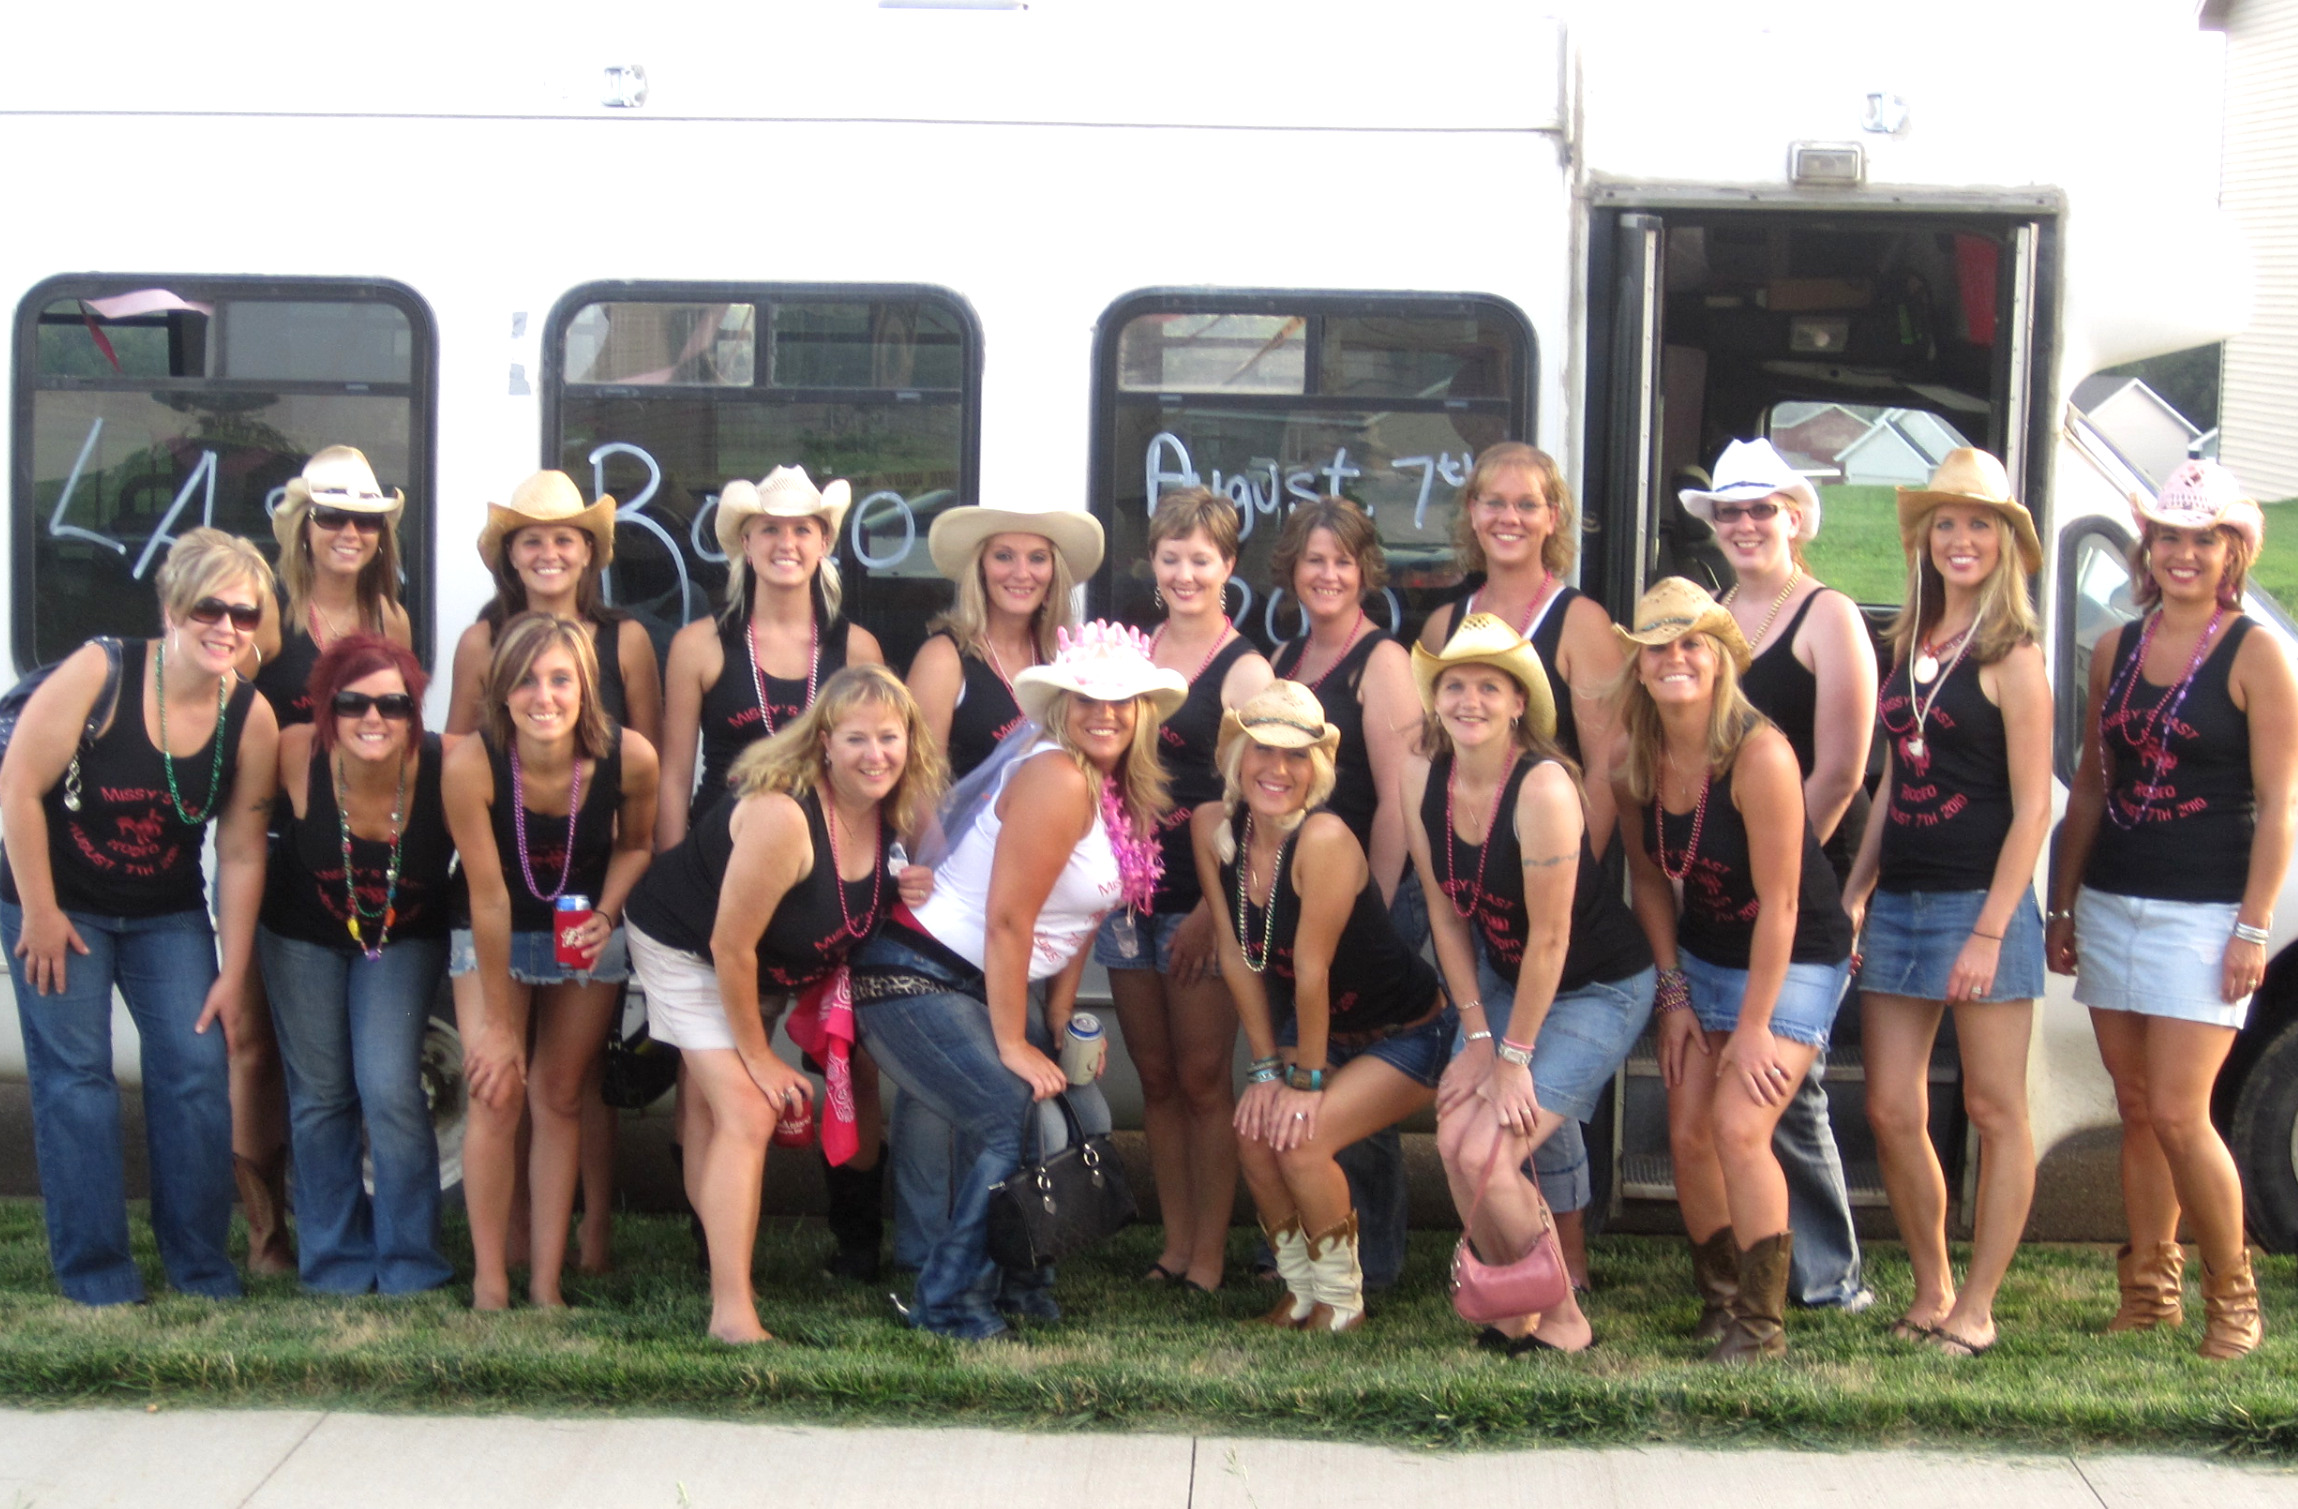 Last Rodeo Bachelorette Party T Shirt Photo